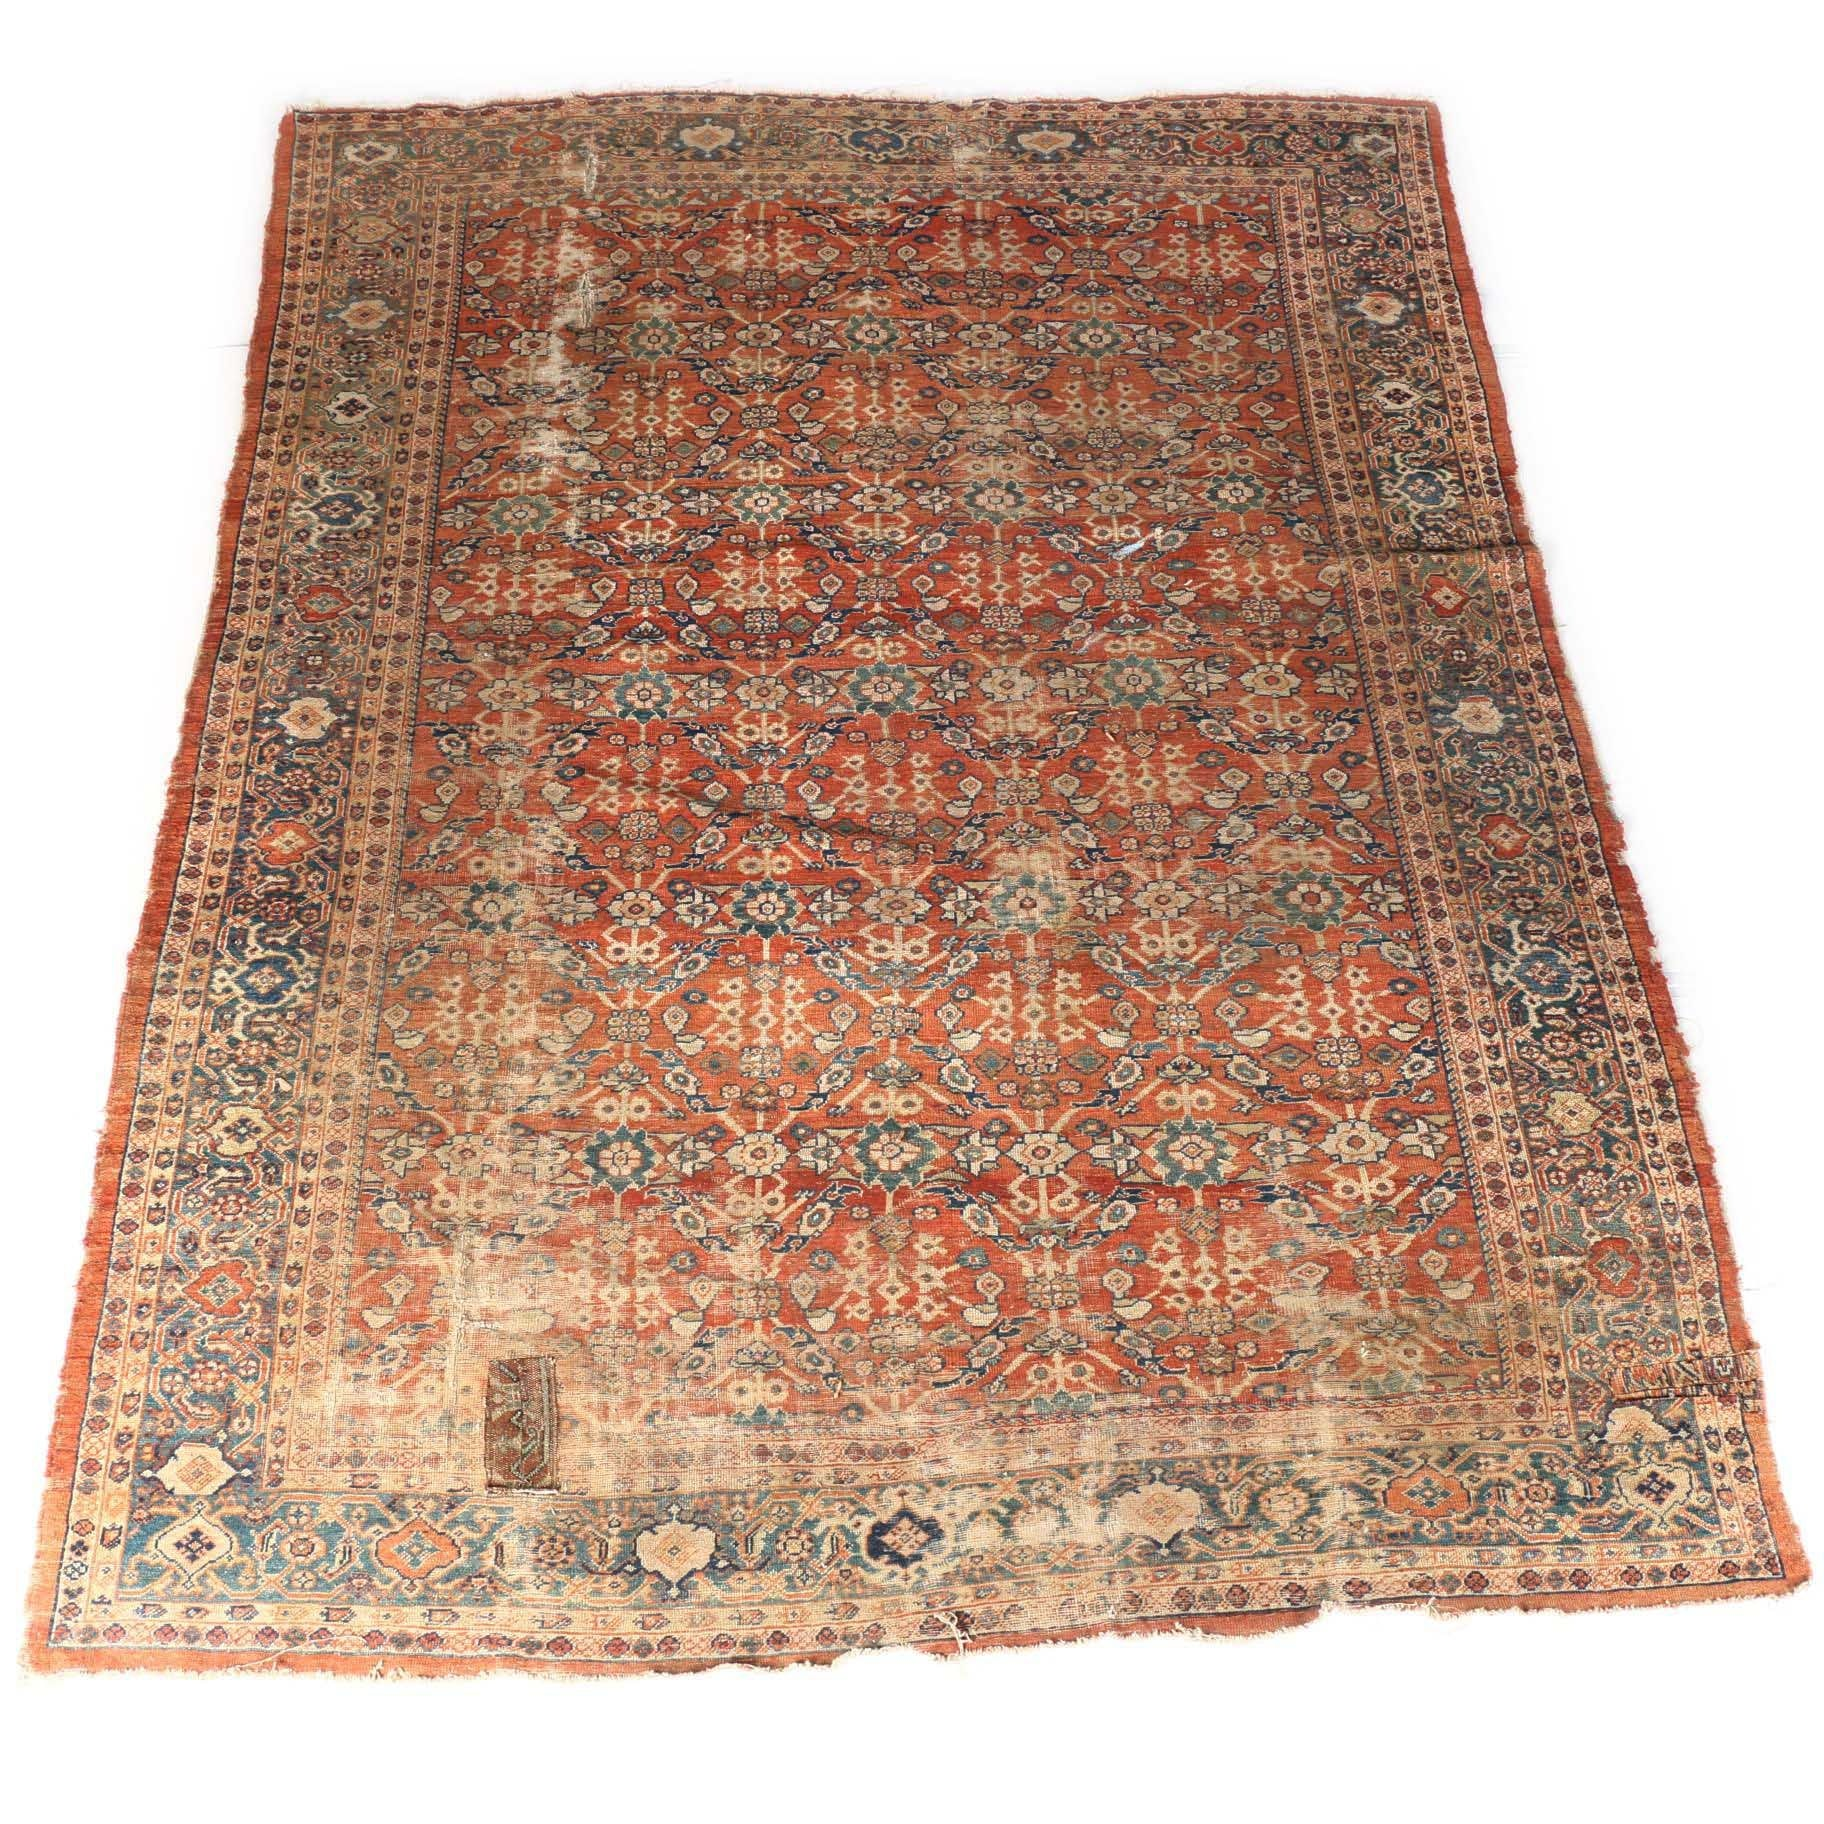 Semi-Antique Hand Knotted Tabriz Area Rug